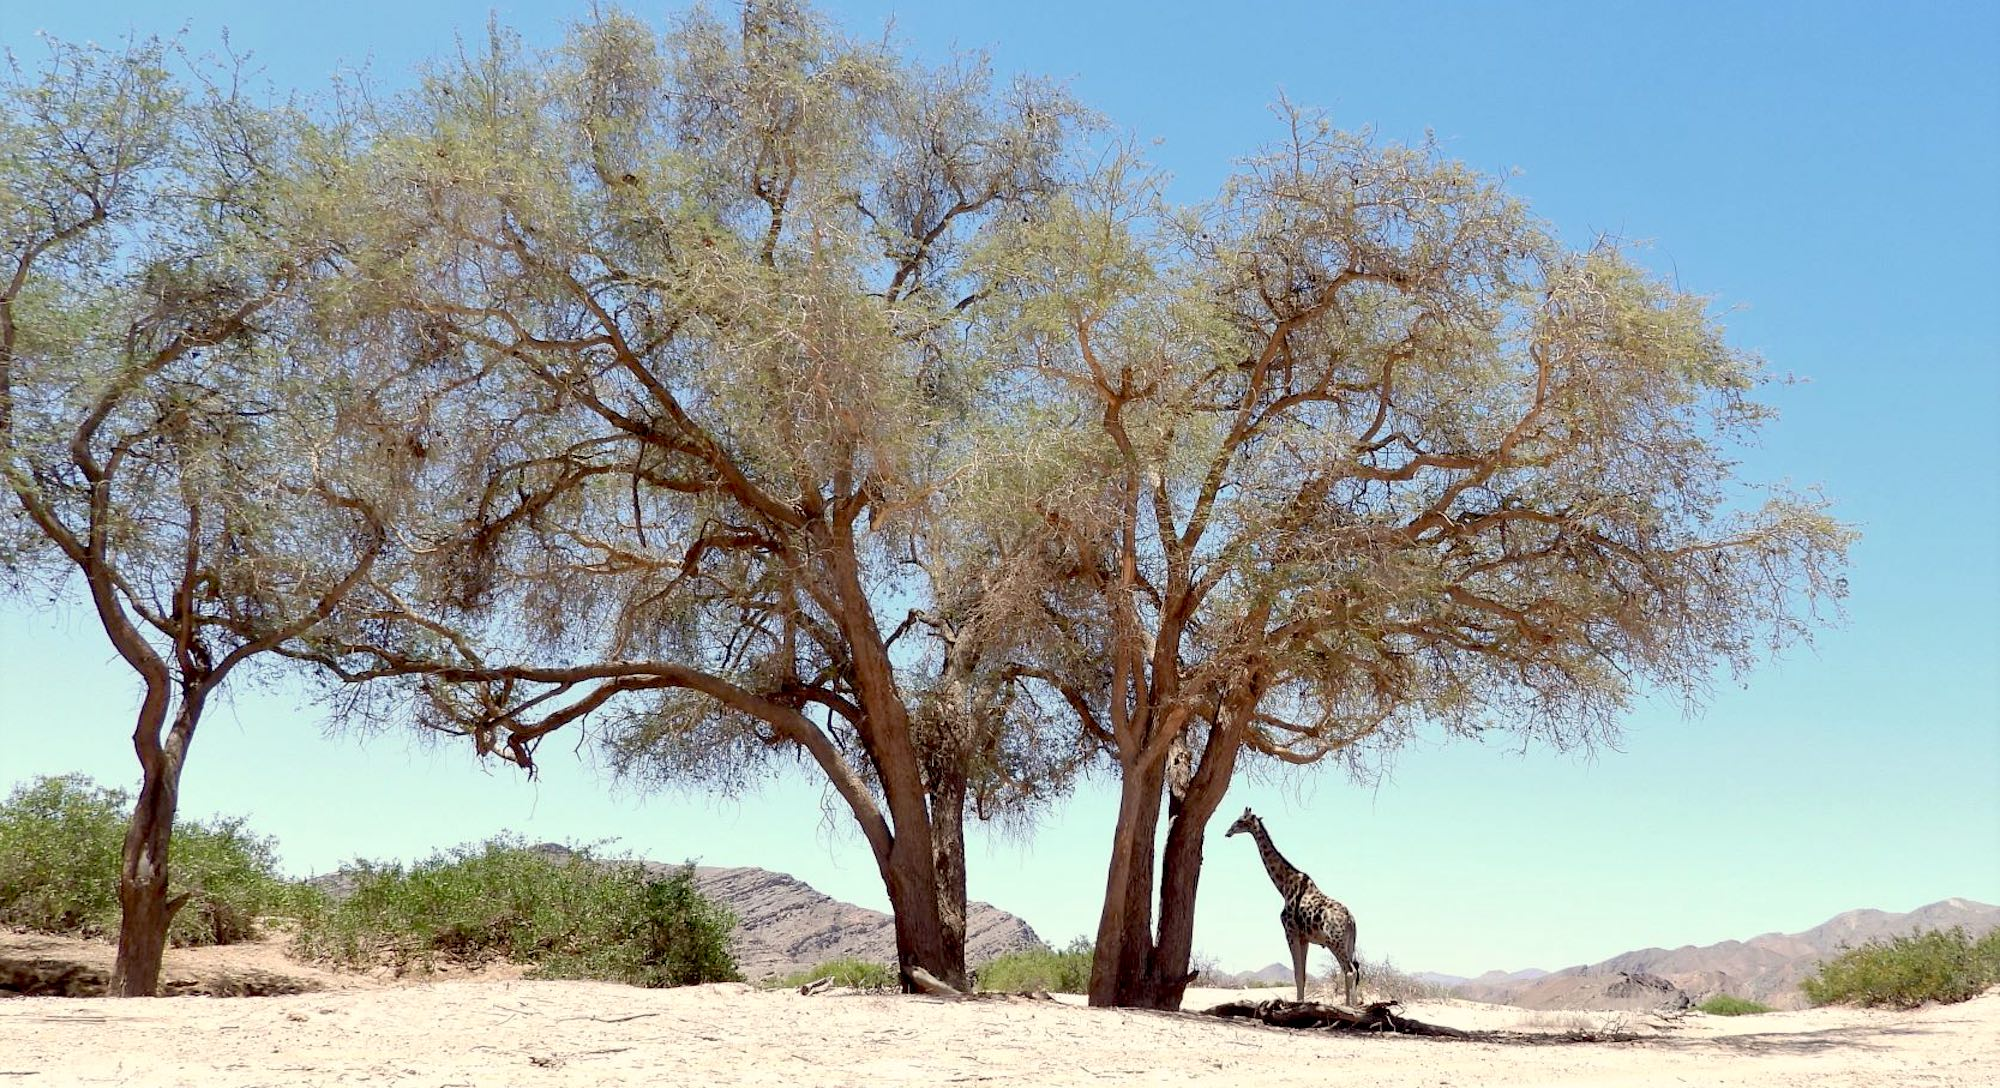 A lone giraffe stands under a massive Ana tree in a dry riverbed.